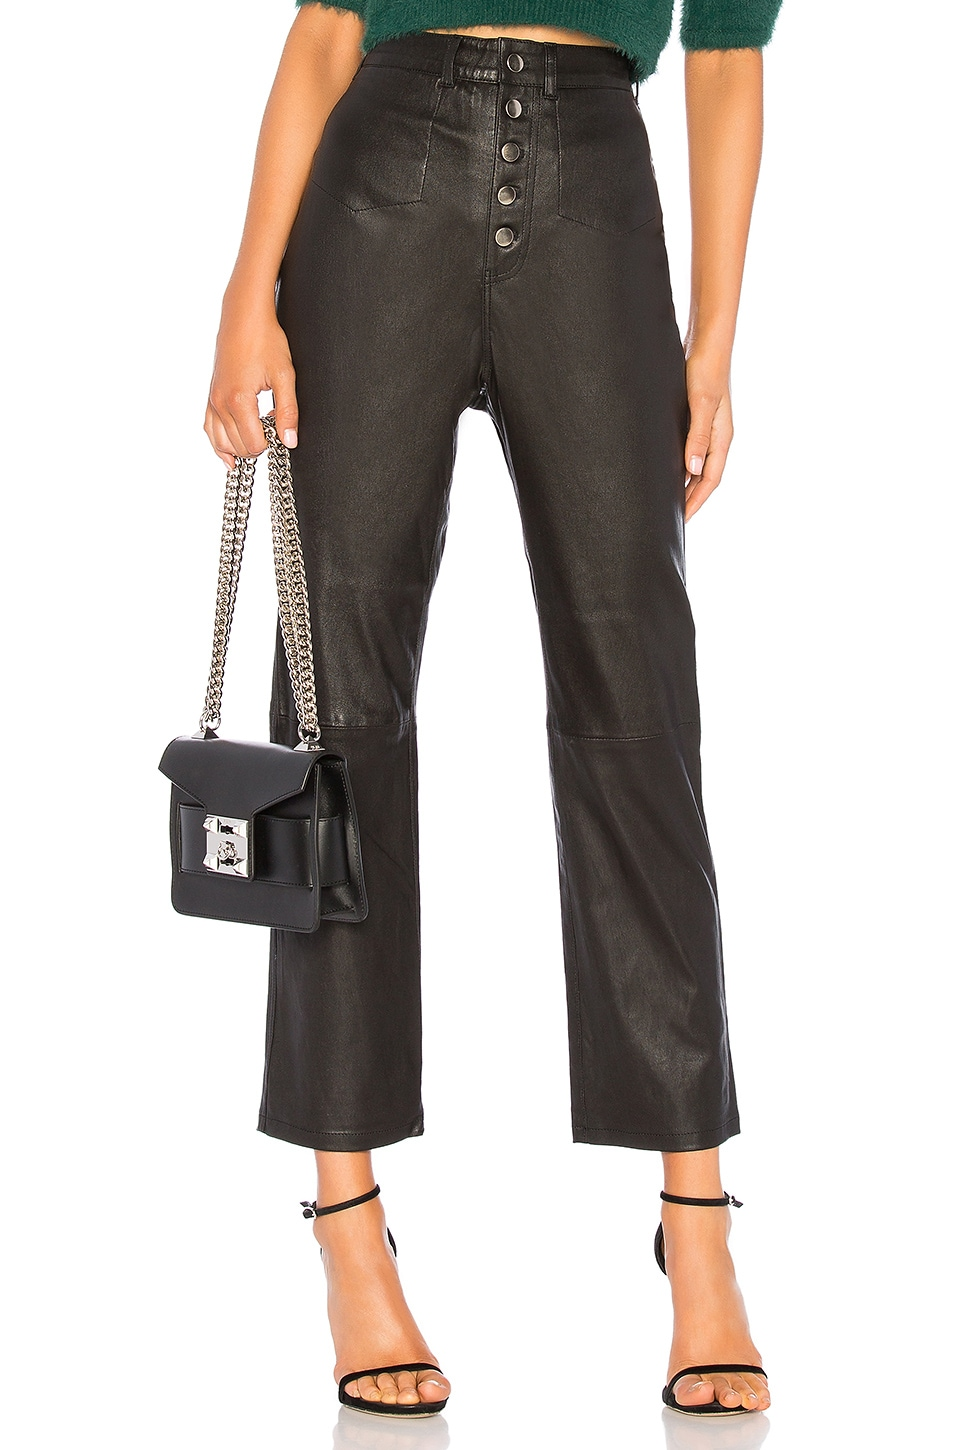 L'Academie The Kane Leather Pant in Black